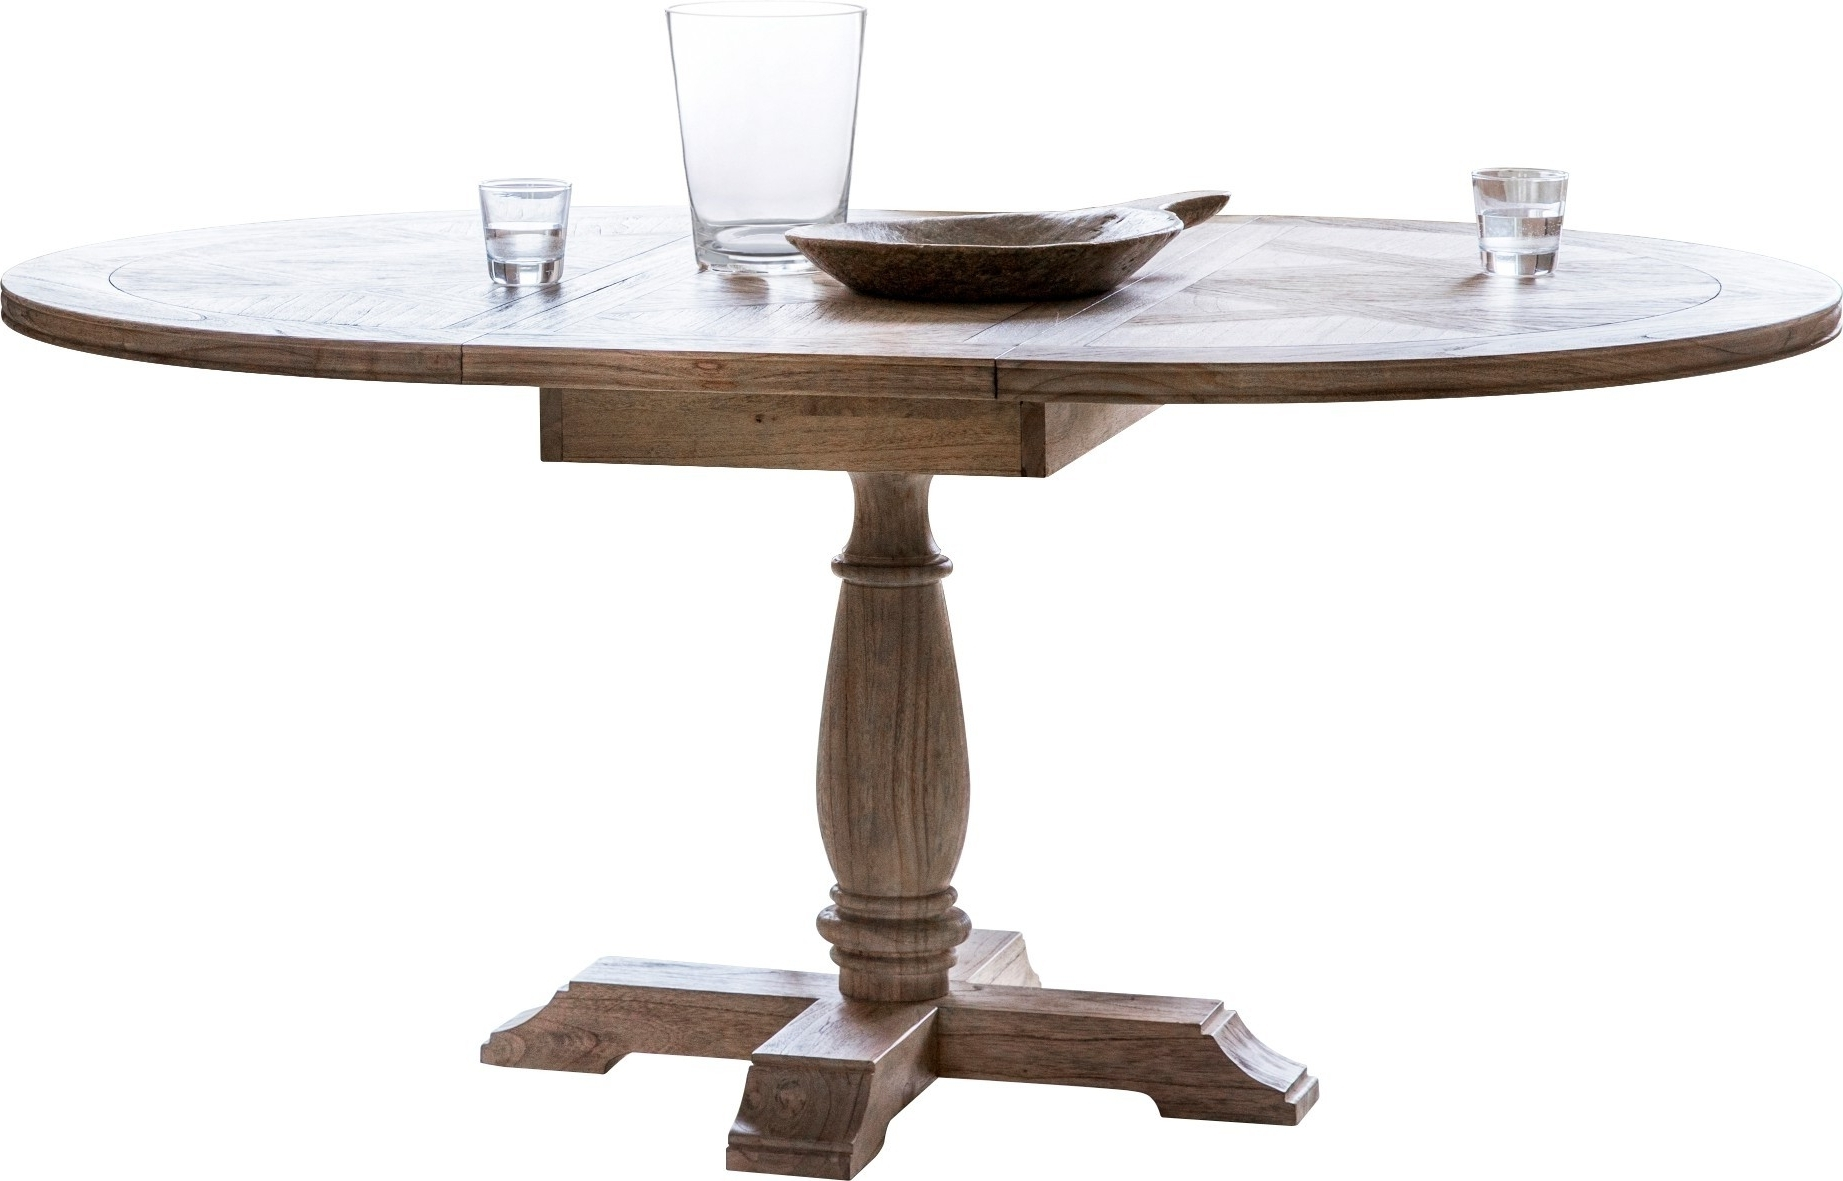 Cotswold Dining Tables Pertaining To Popular Pavilion Chic Extending Dining Table Cotswold Round (View 18 of 25)